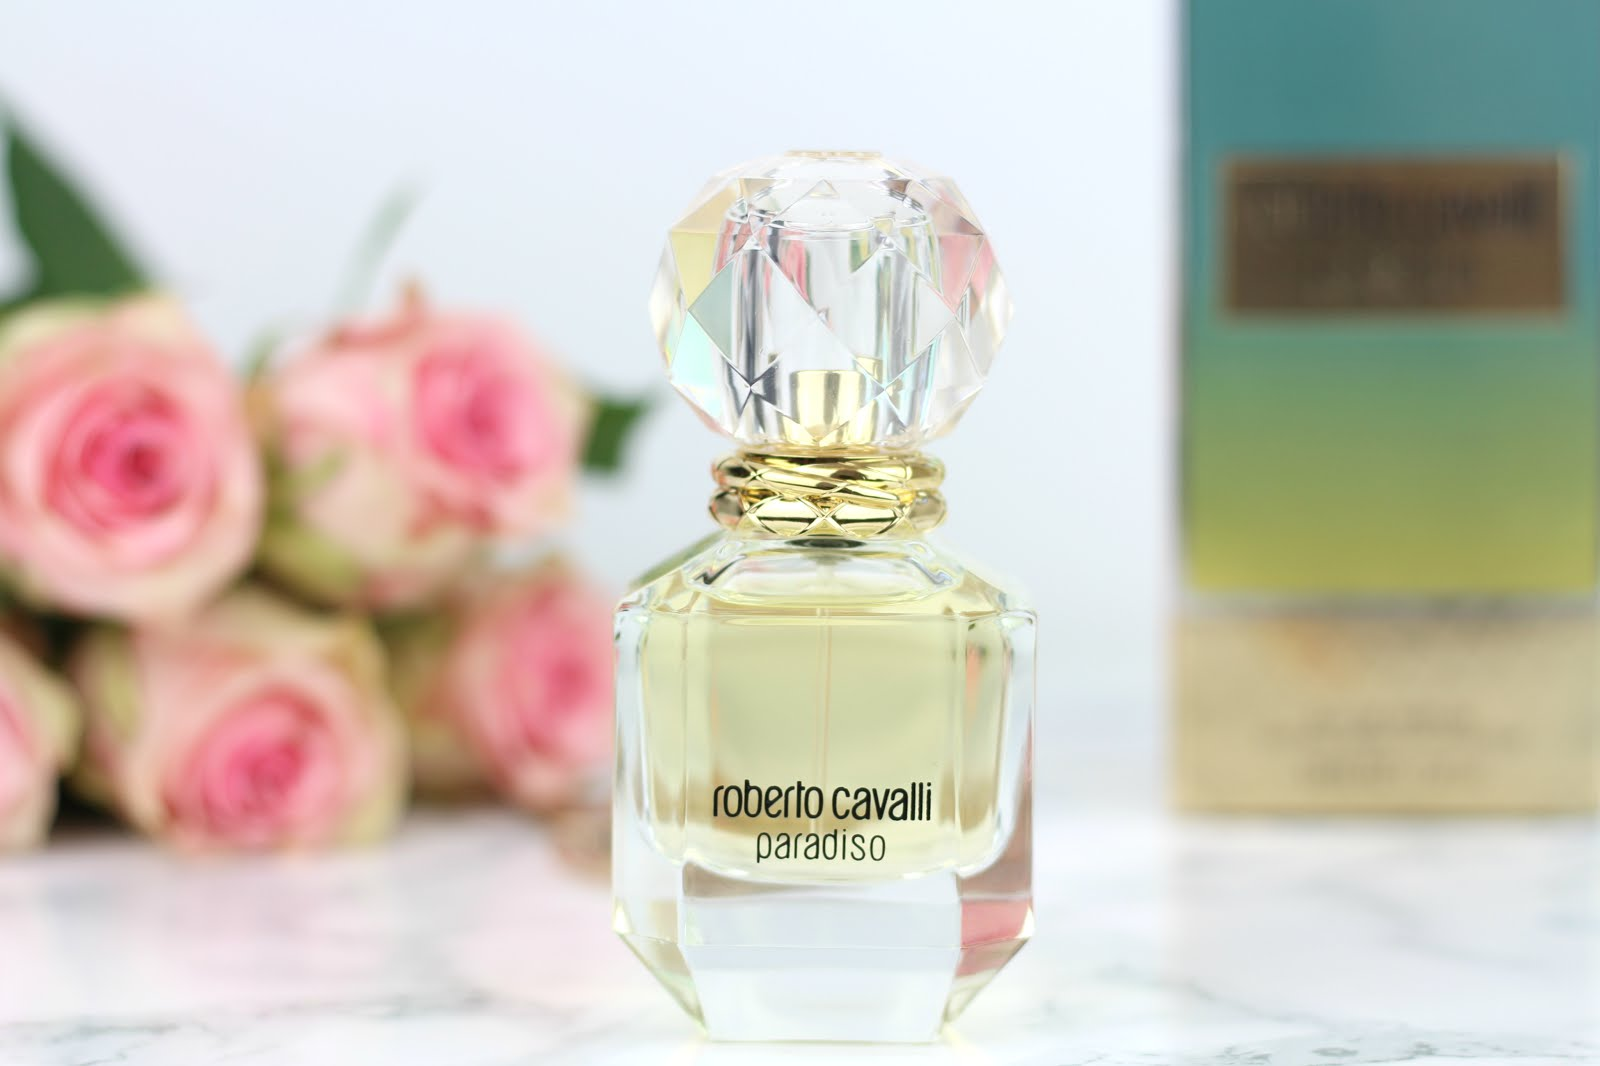 roberto cavalli, roberto cavalli parfum, roberto cavalli paradiso, roberto cavalli paradiso parfum, roberto cavalli paradiso review, parfumgroup, parfumgroup review